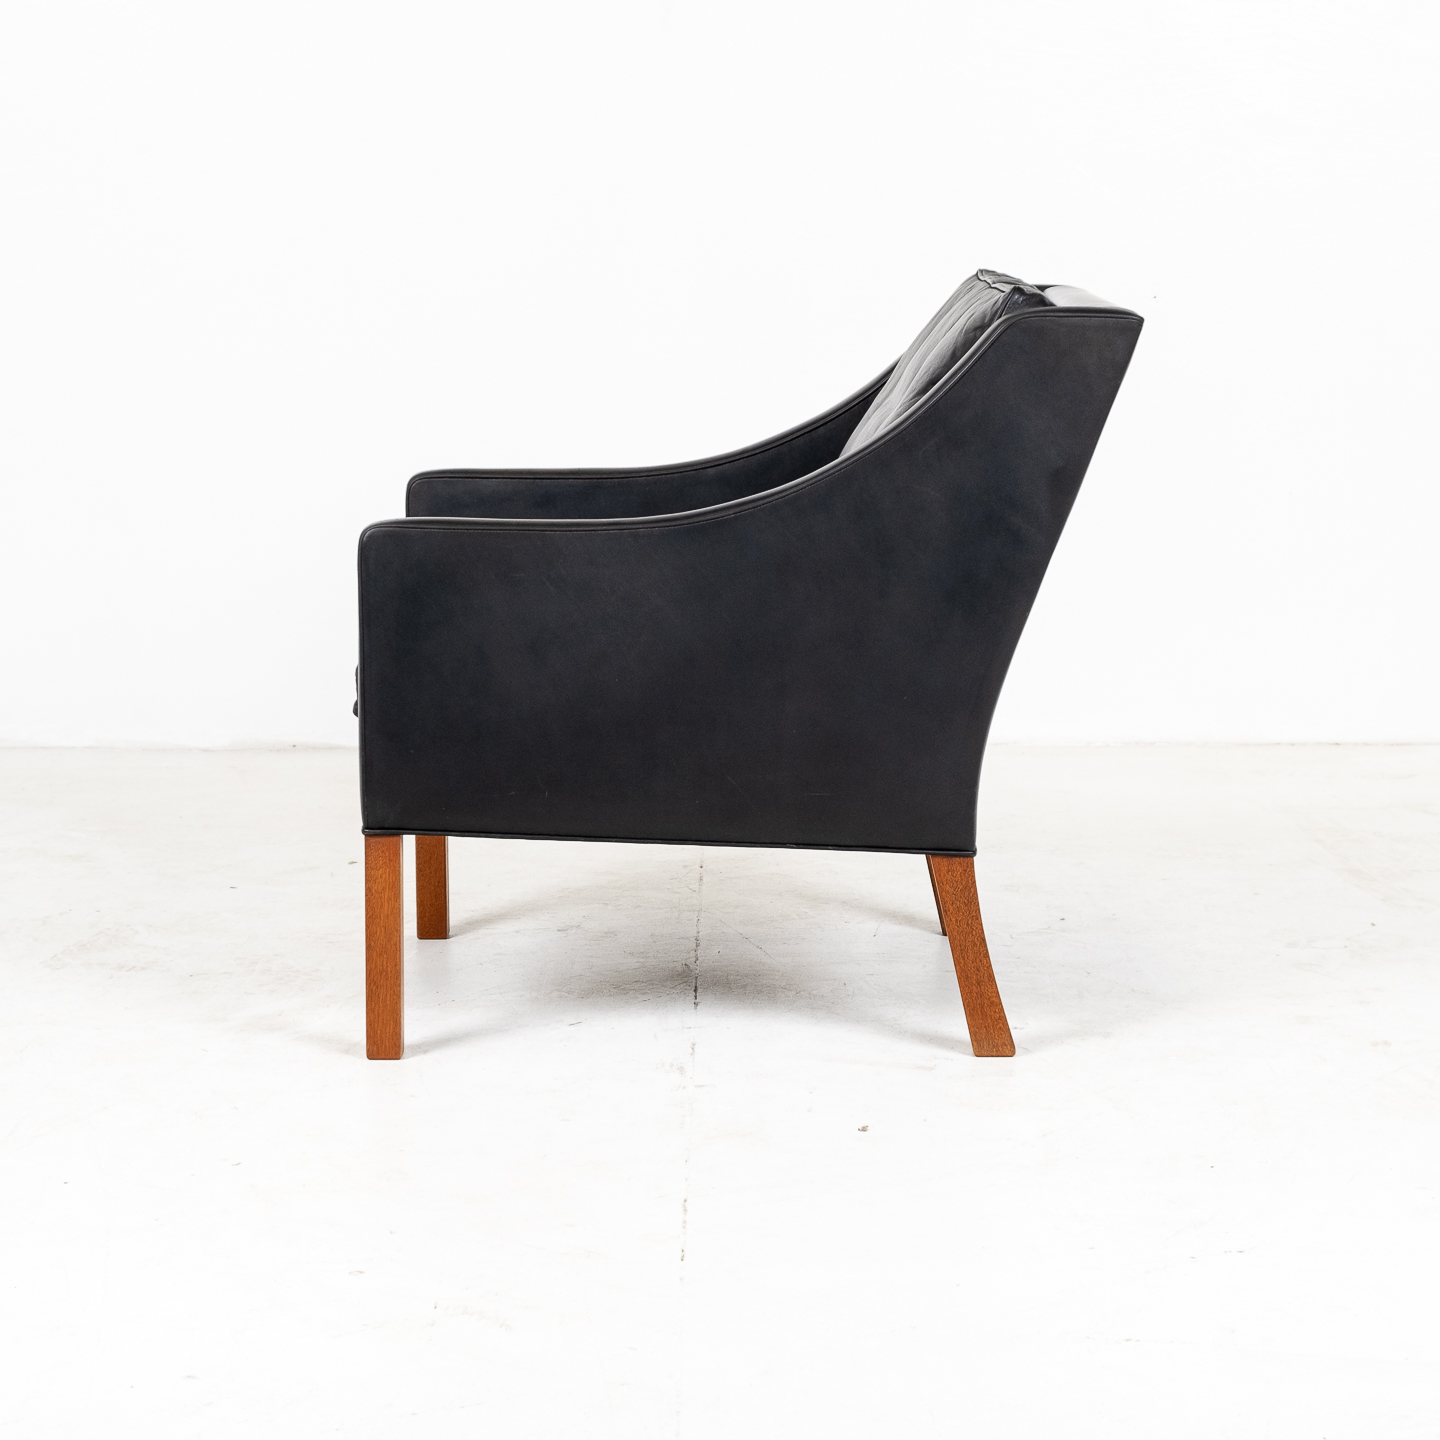 Model 2207 Armchair With Footstool Designed By Borge Mogensen For Fredericia Mobelfabrik In Black Leather, 1960s, Denmark 0000007